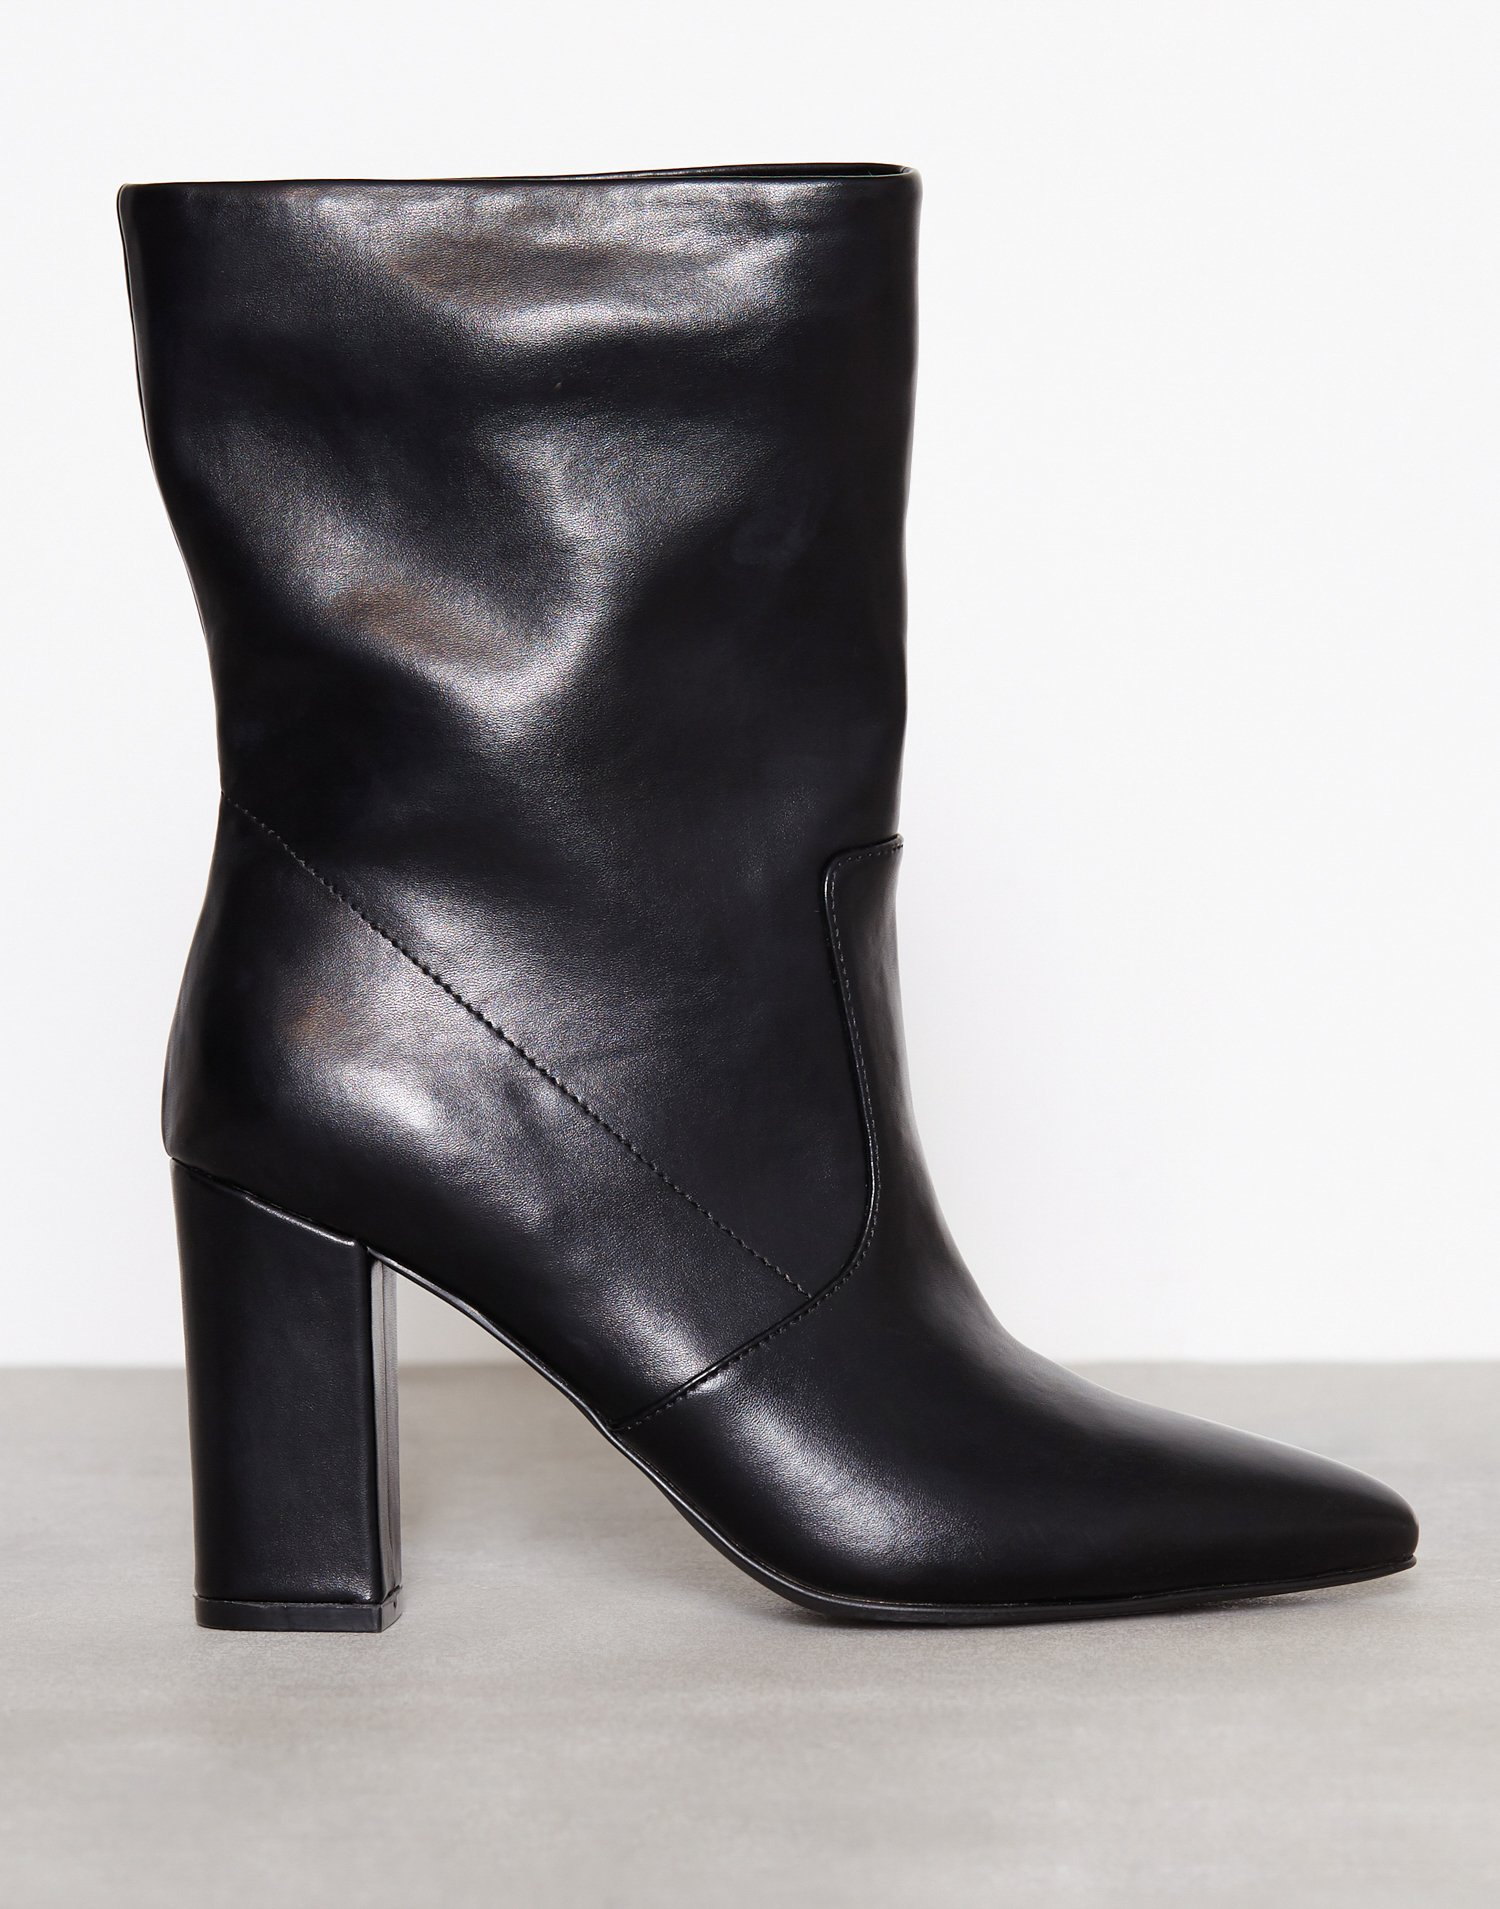 Wide Shaft Boot by Nly Shoes